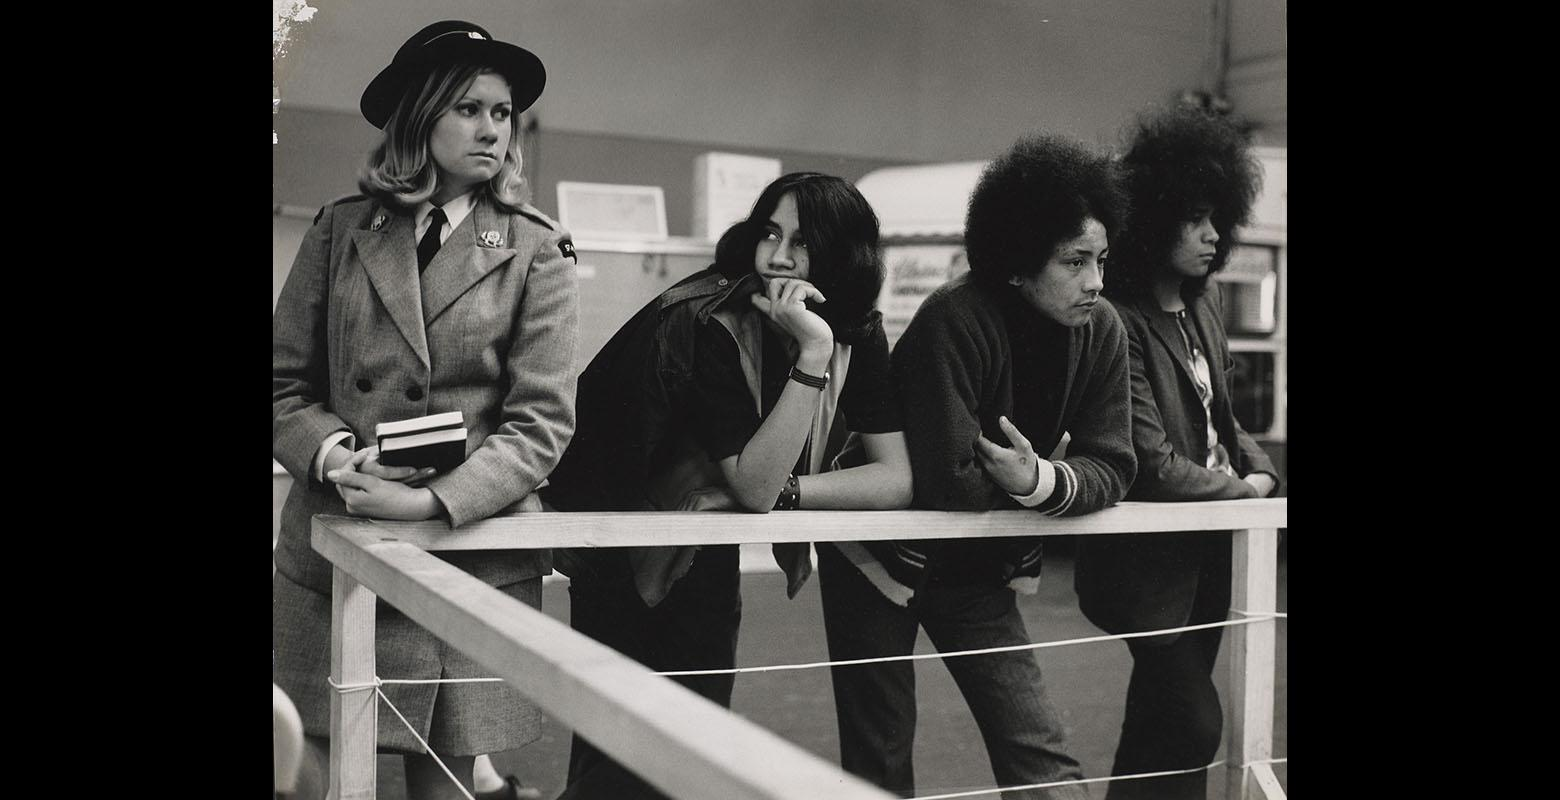 View of three young Māori men leaning on a wooden rail. On their left stands a young blonde woman in a St Johns uniform.